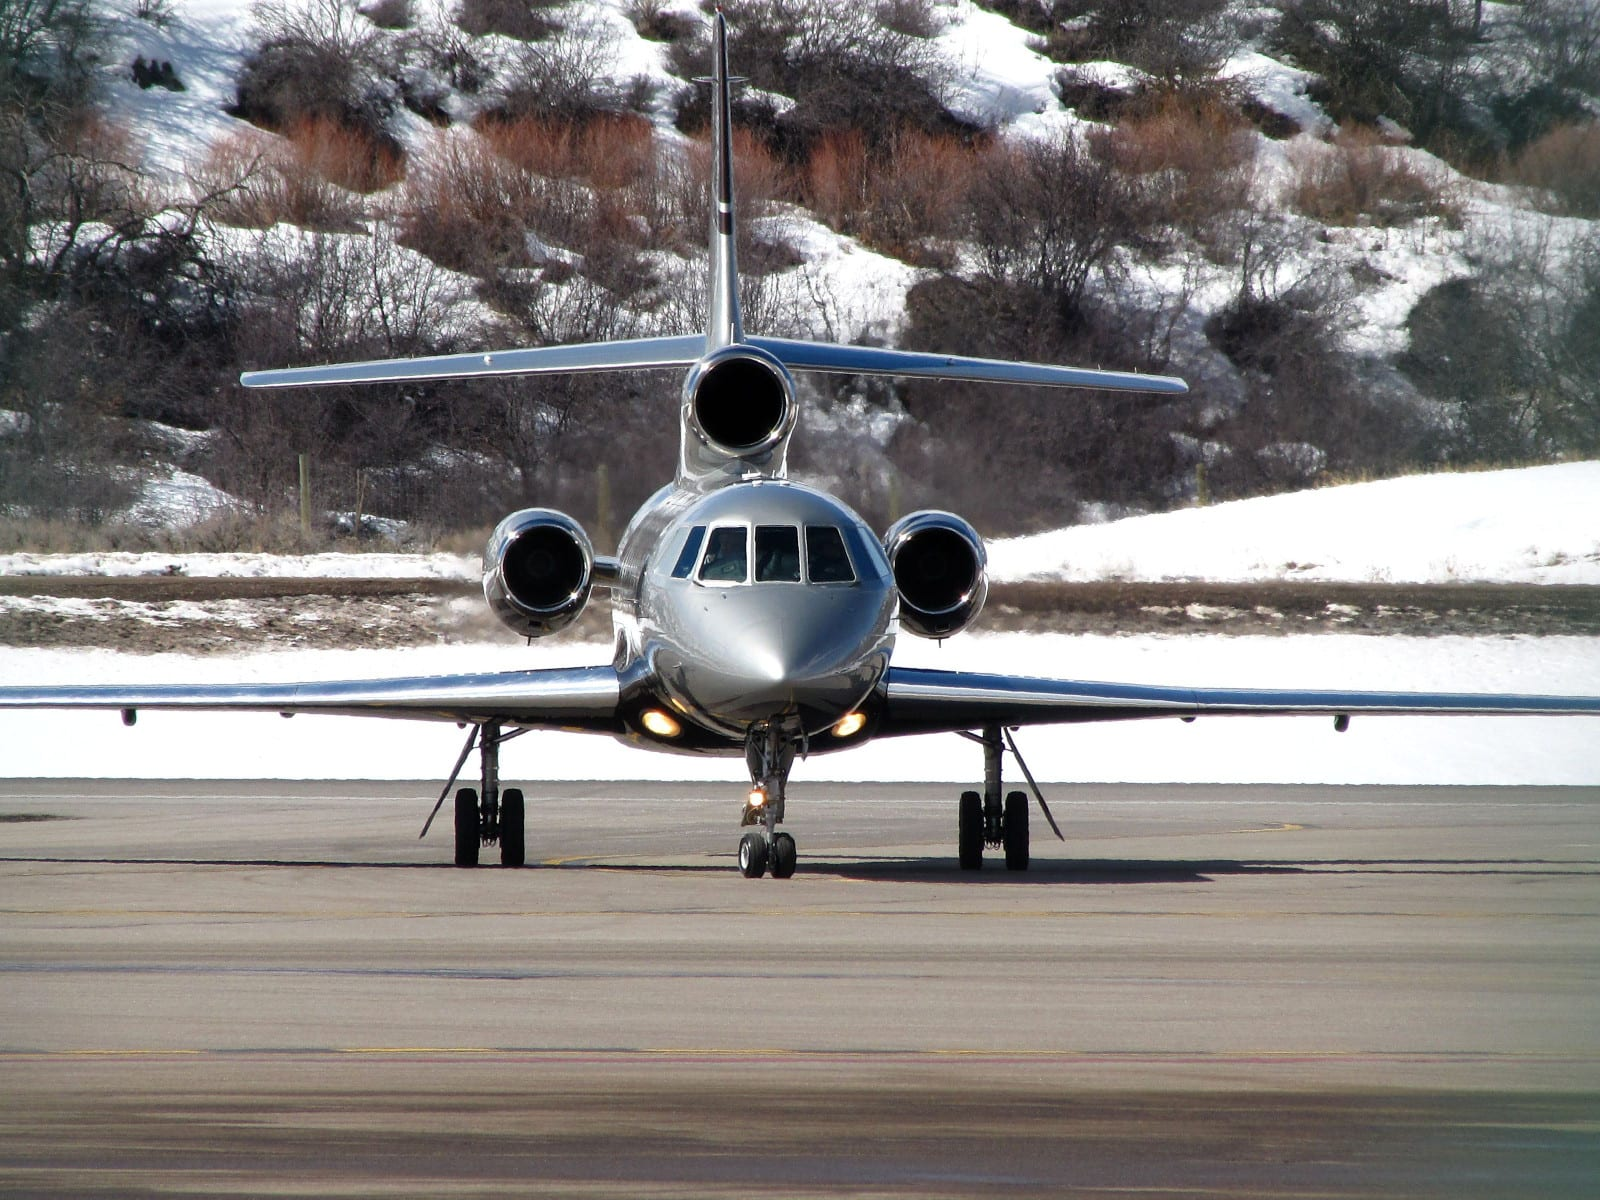 Aspen-Pitkin County Airport Dassault Falcon 50